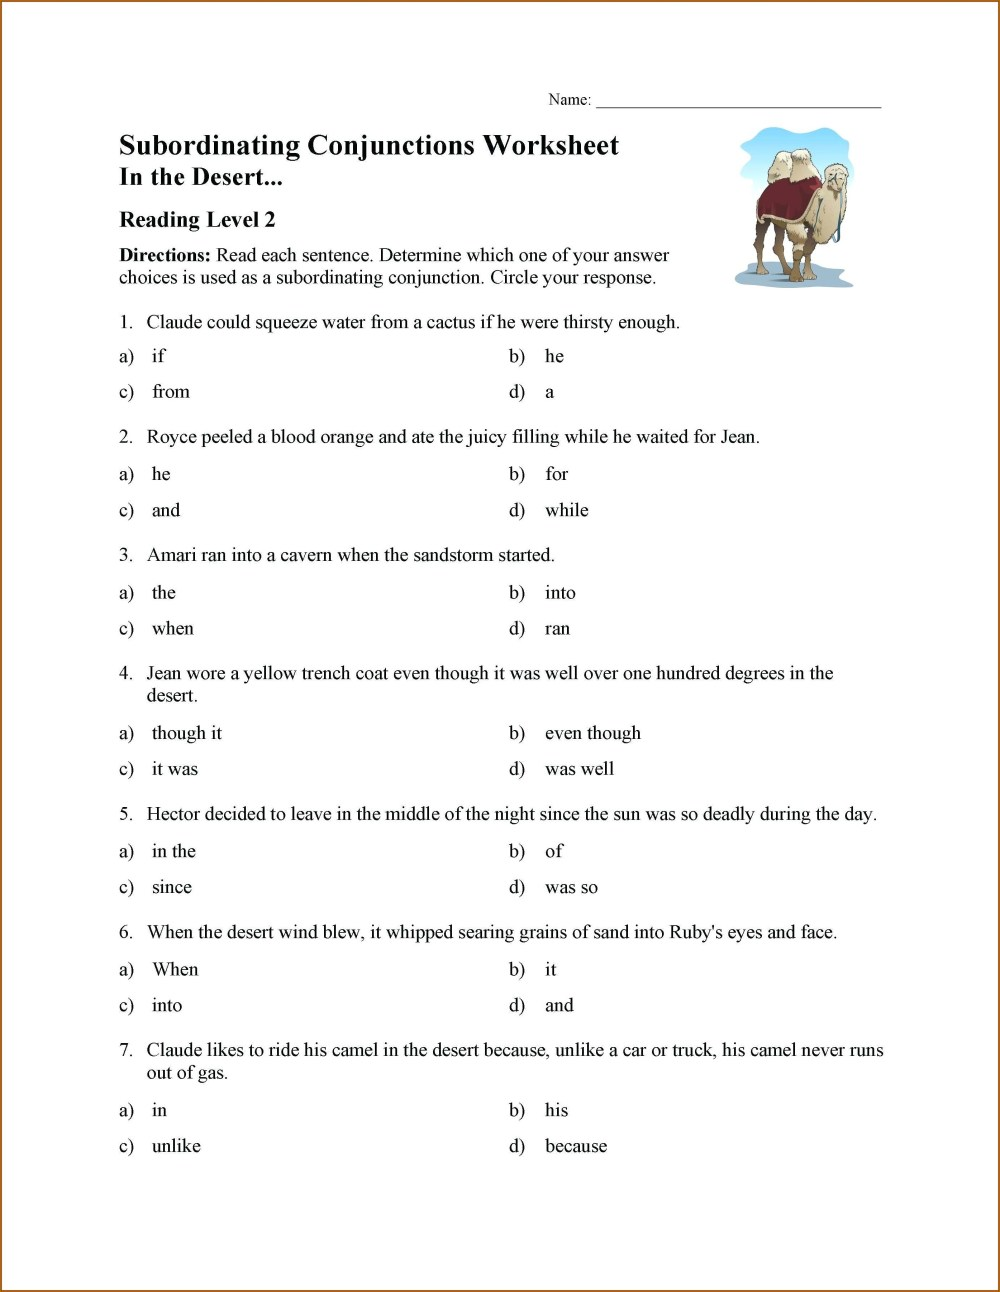 medium resolution of Coordinating Conjunctions Worksheet   Printable Worksheets and Activities  for Teachers